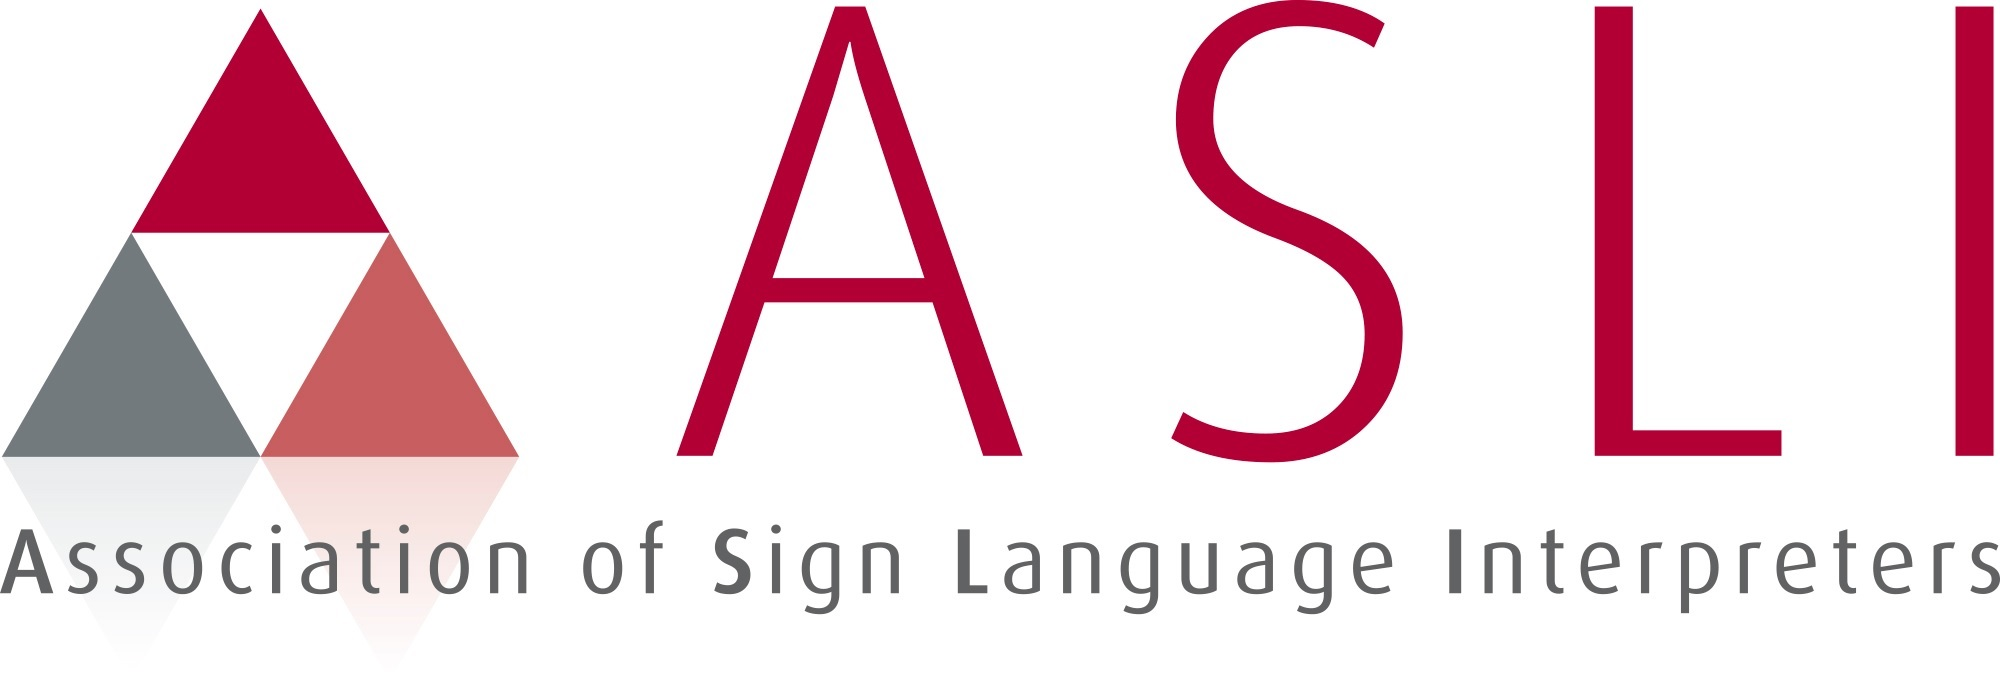 ASLI - Association of Sign Language Interpreters